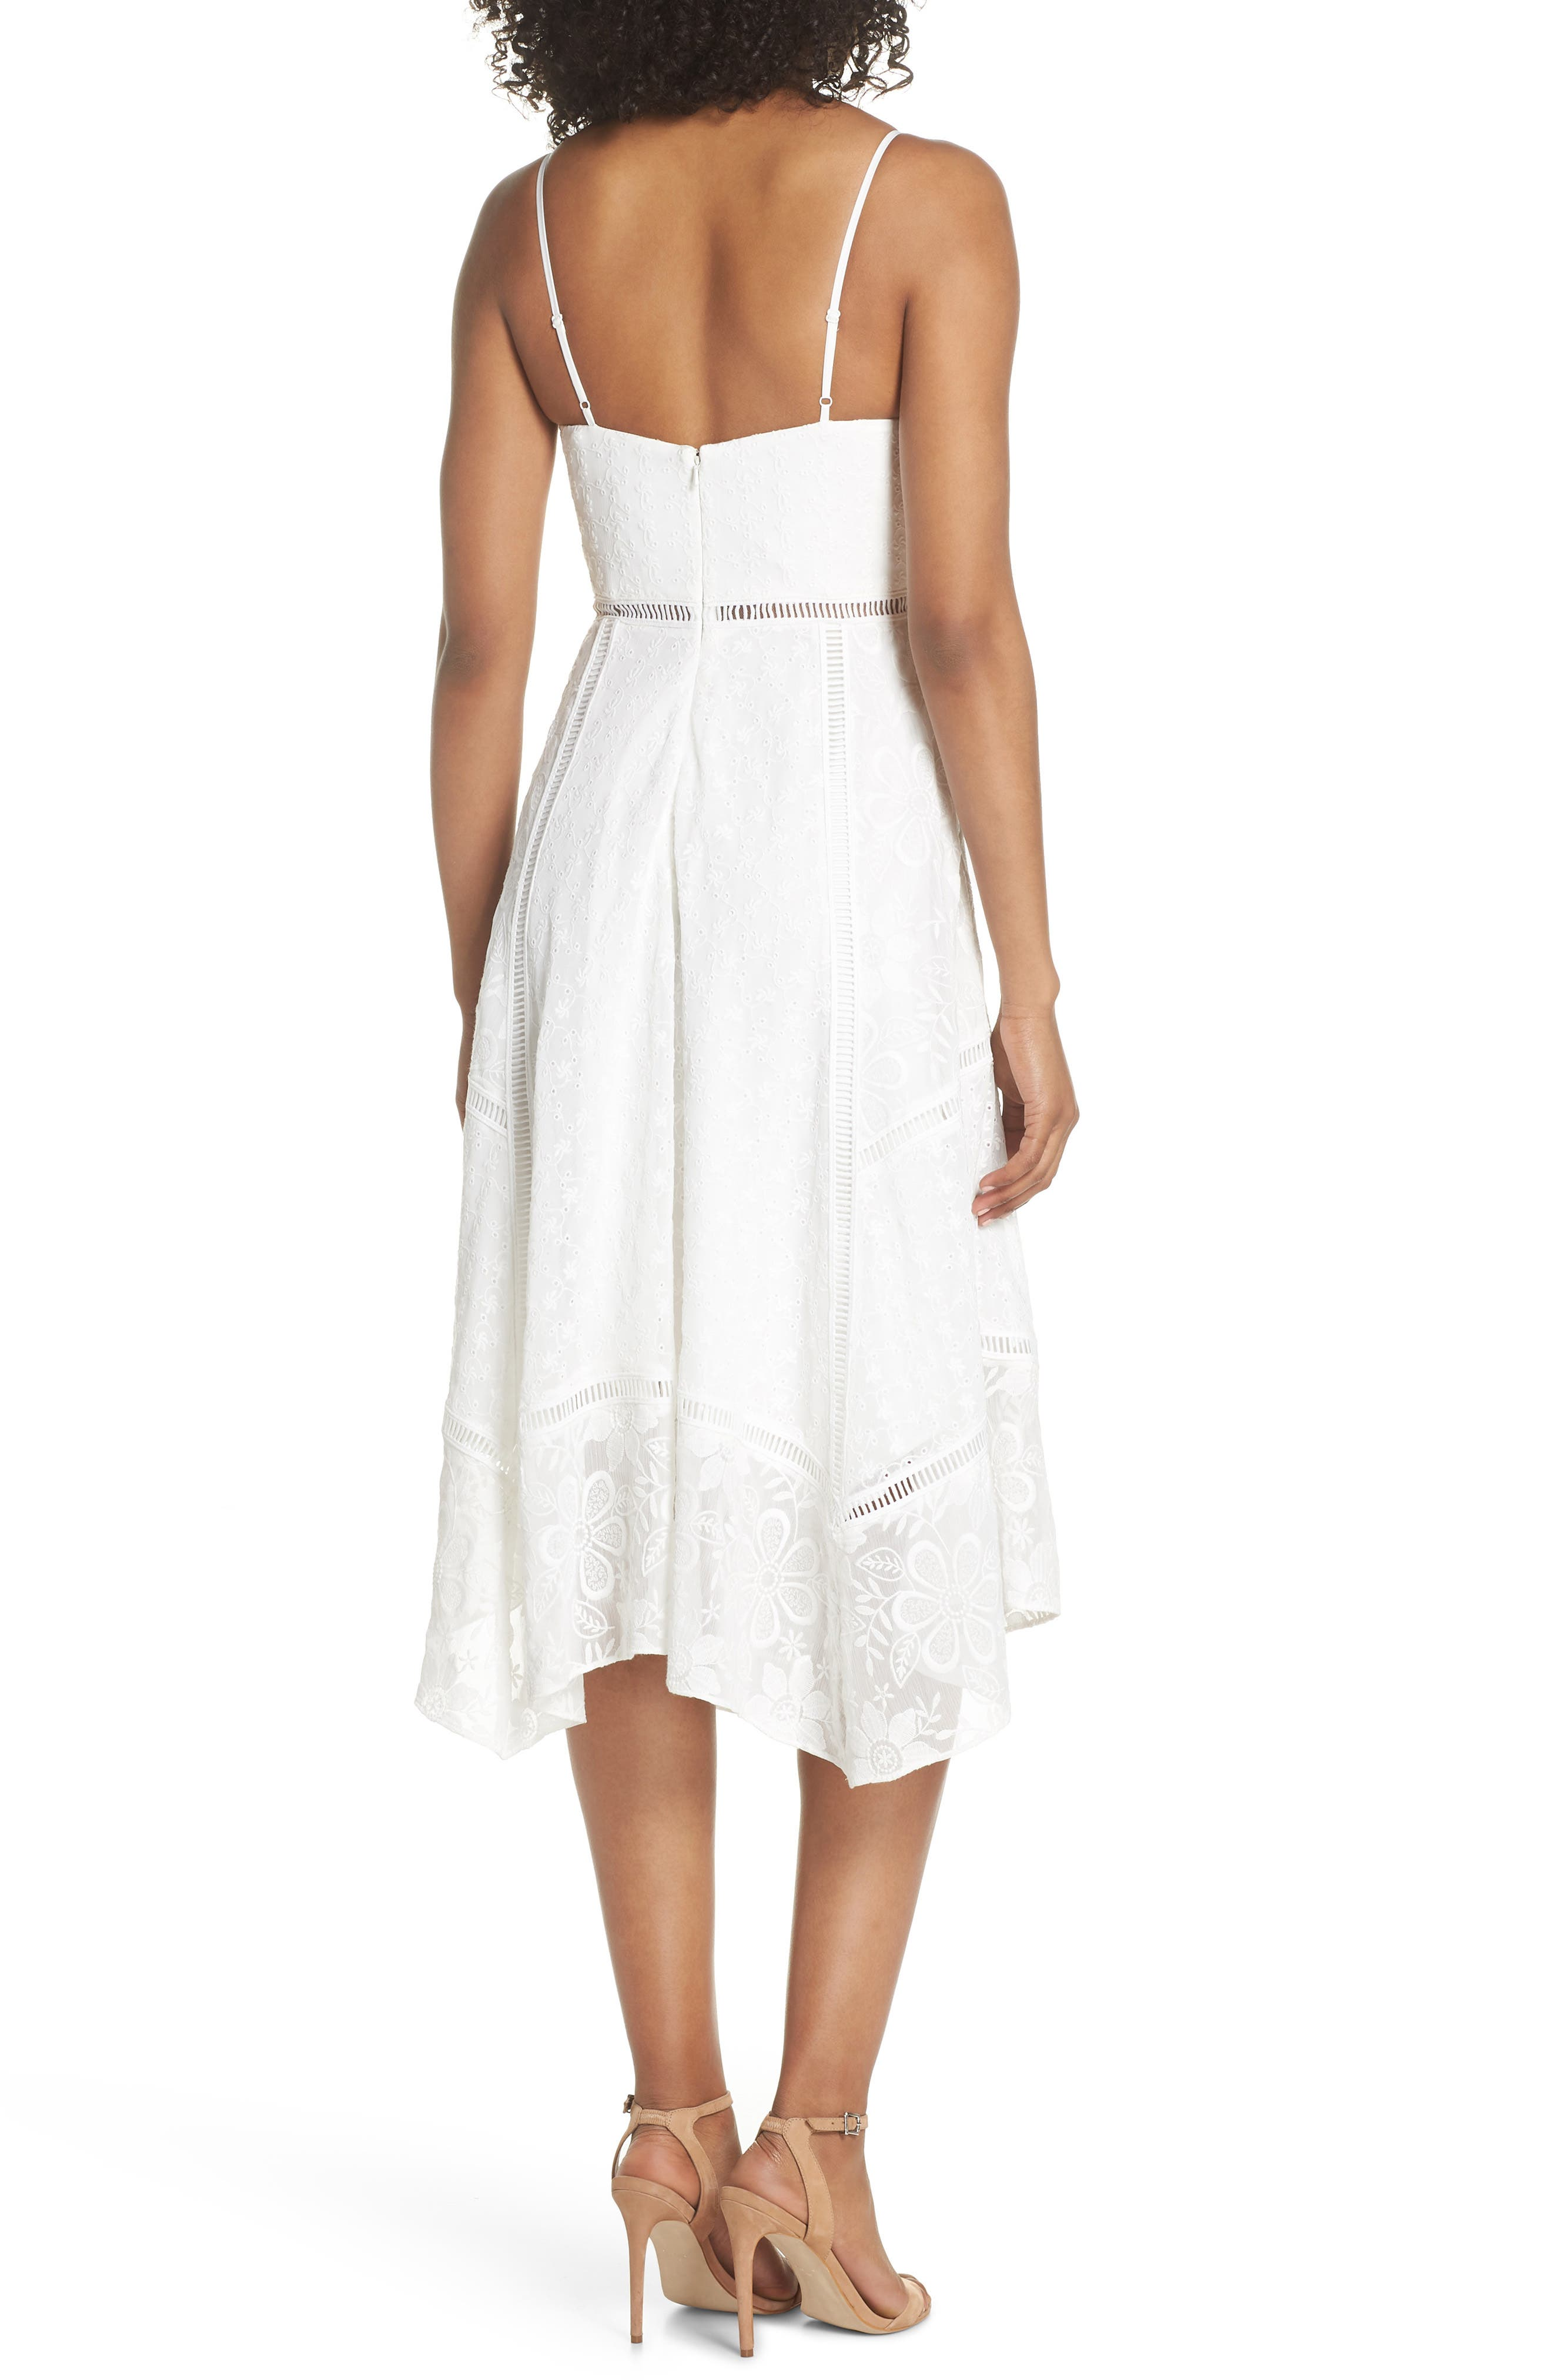 EVER NEW,                             Broderie Anglaise Knot Detail Dress,                             Alternate thumbnail 2, color,                             100